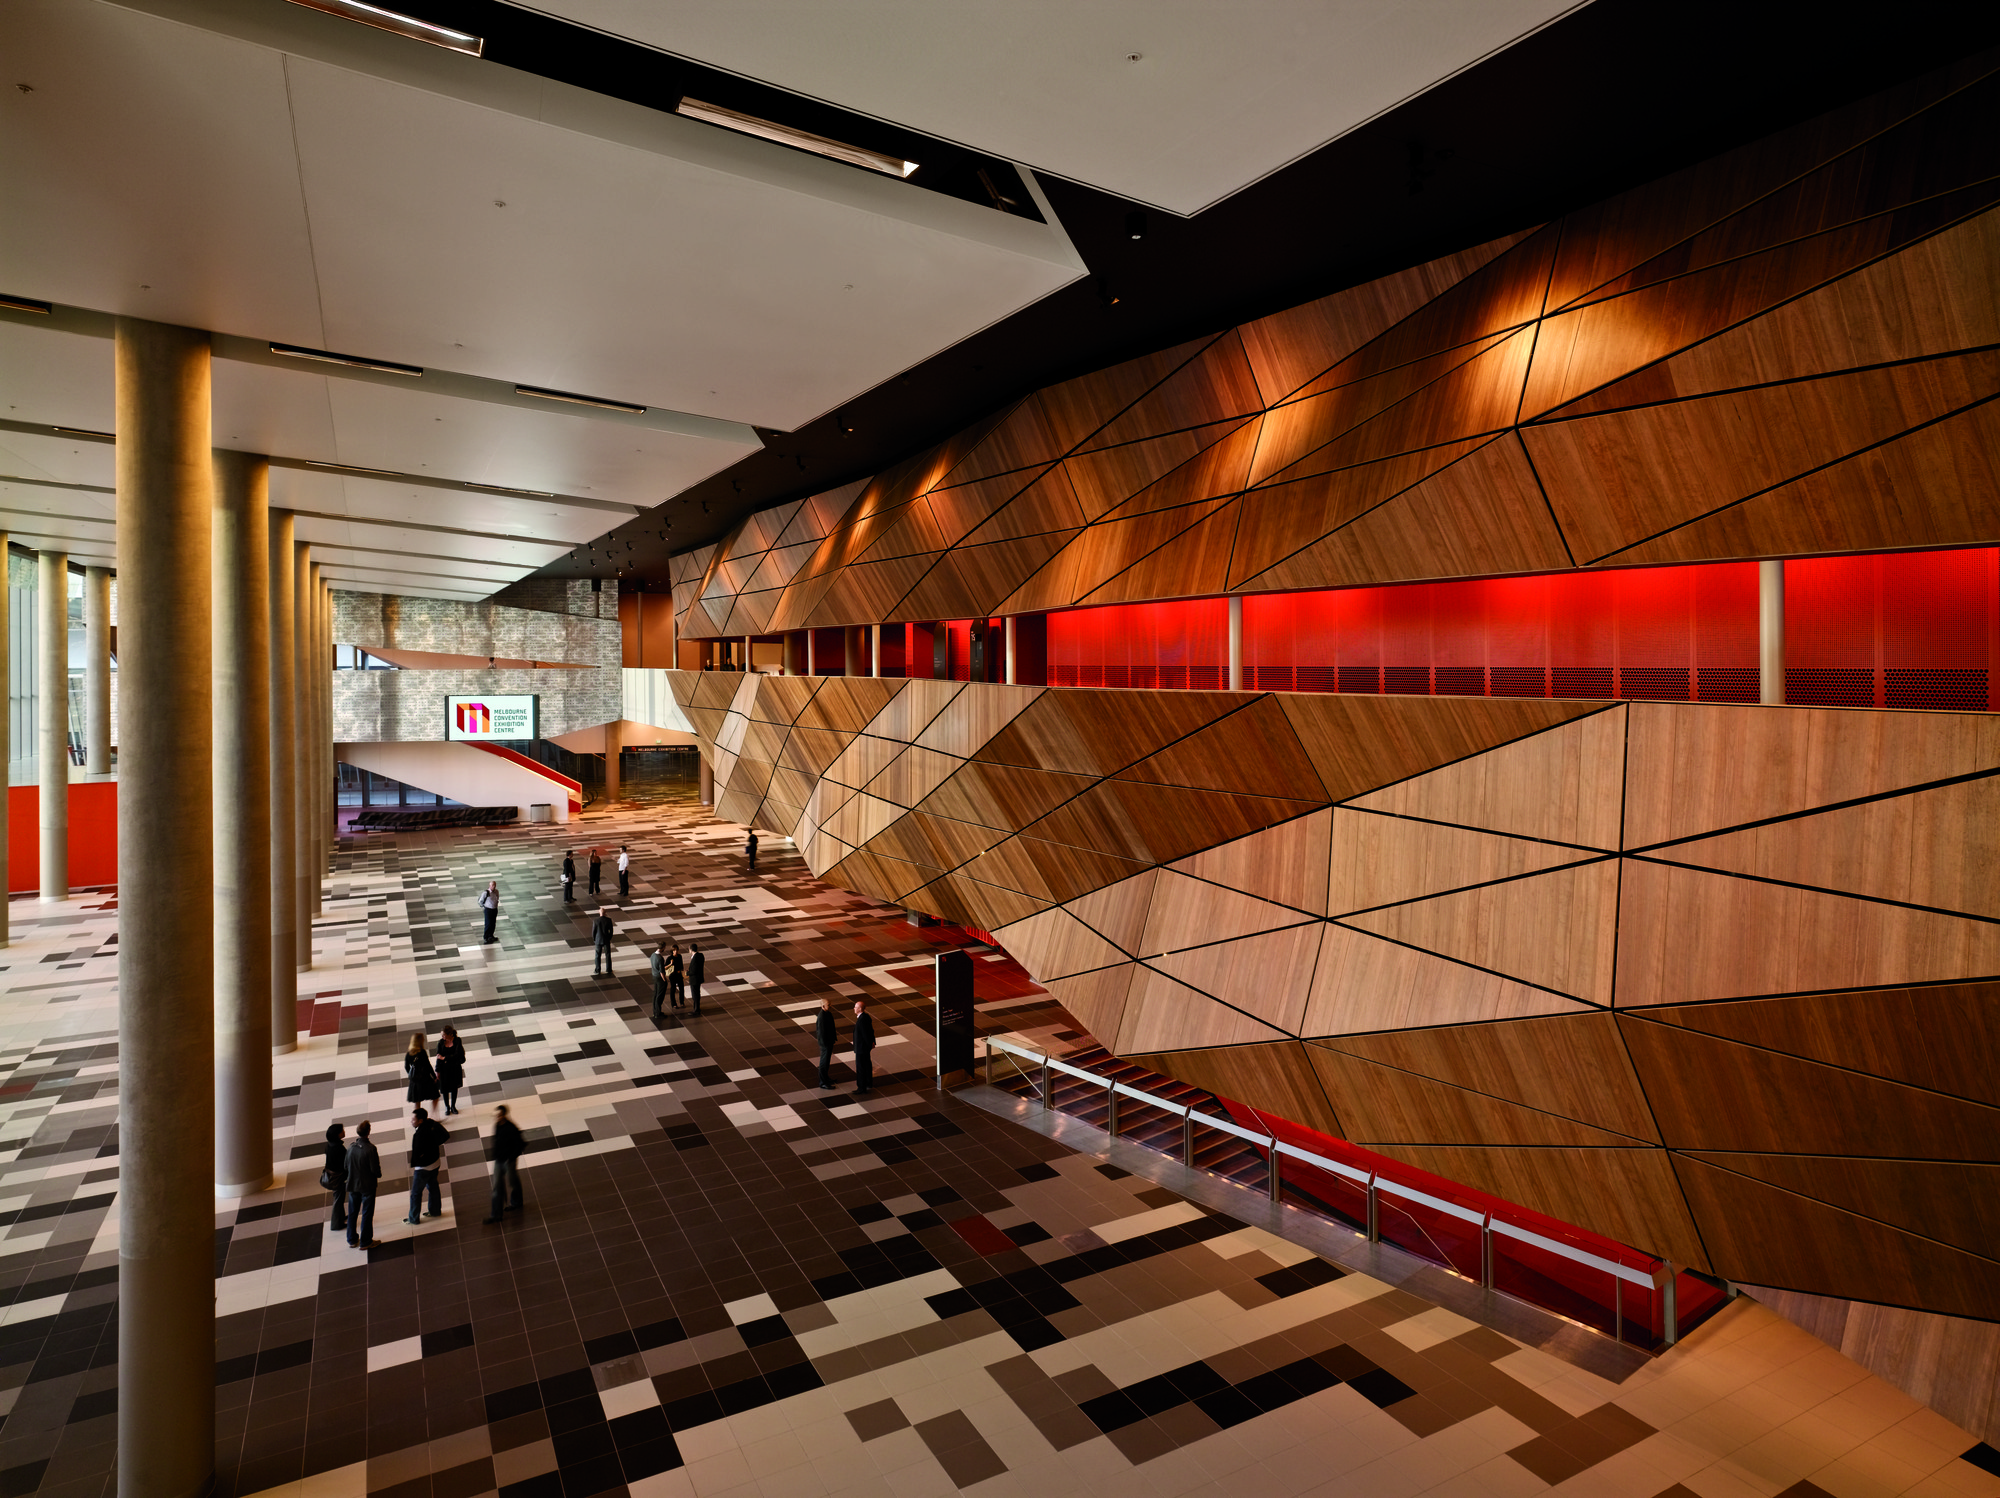 D Exhibition Melbourne : Gallery of melbourne convention and exhibition centre